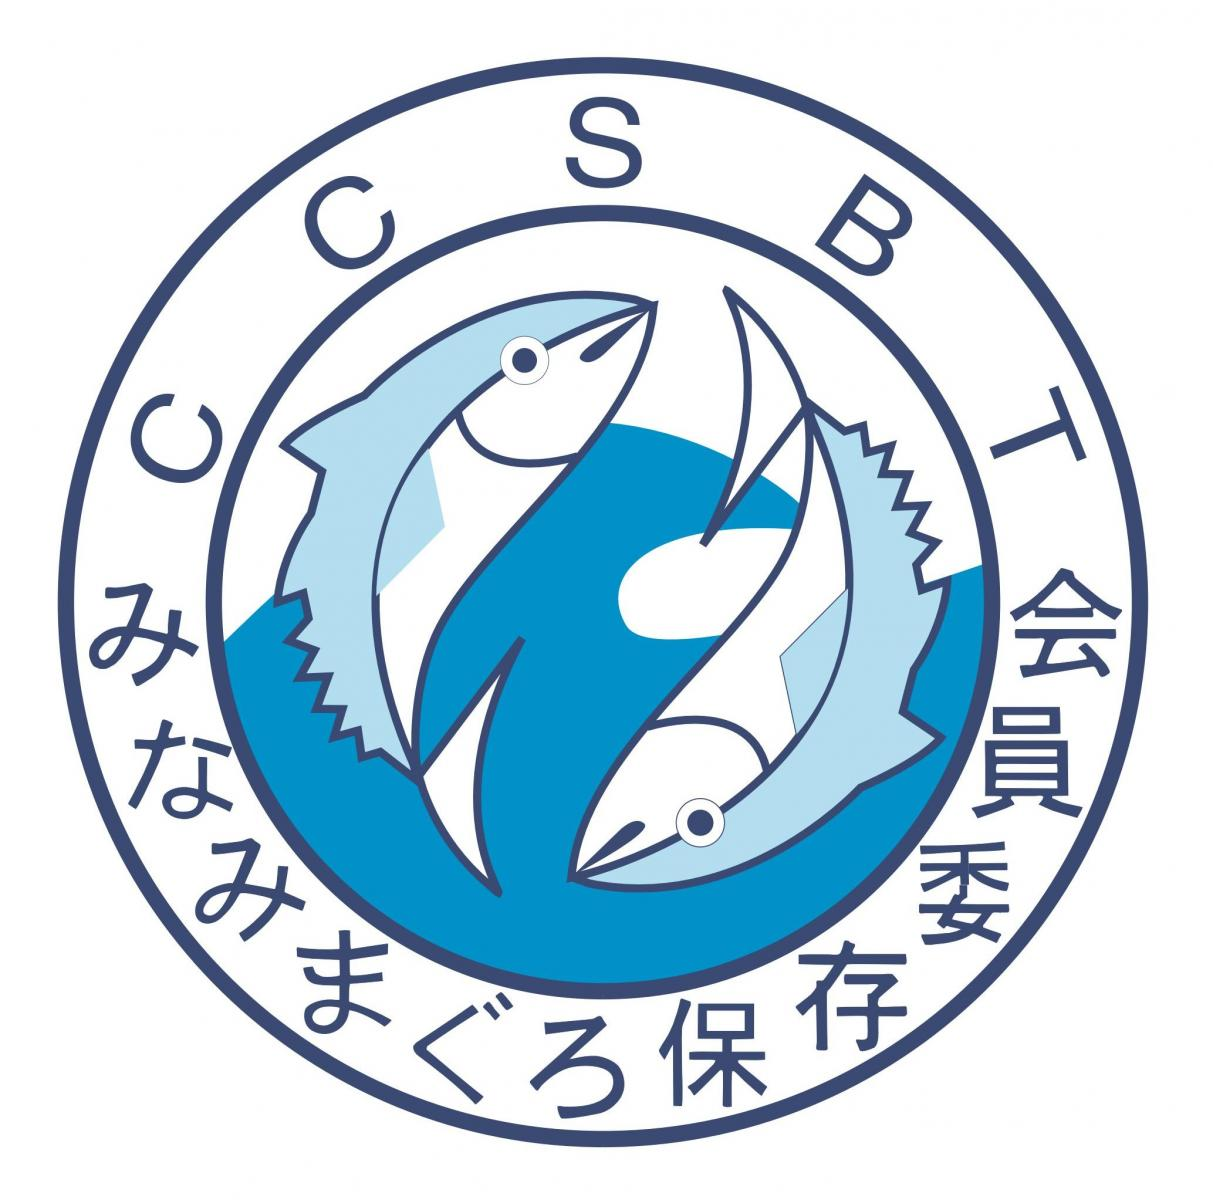 Commission for the Conservation of southern Bluefin Tuna(CCSBT)